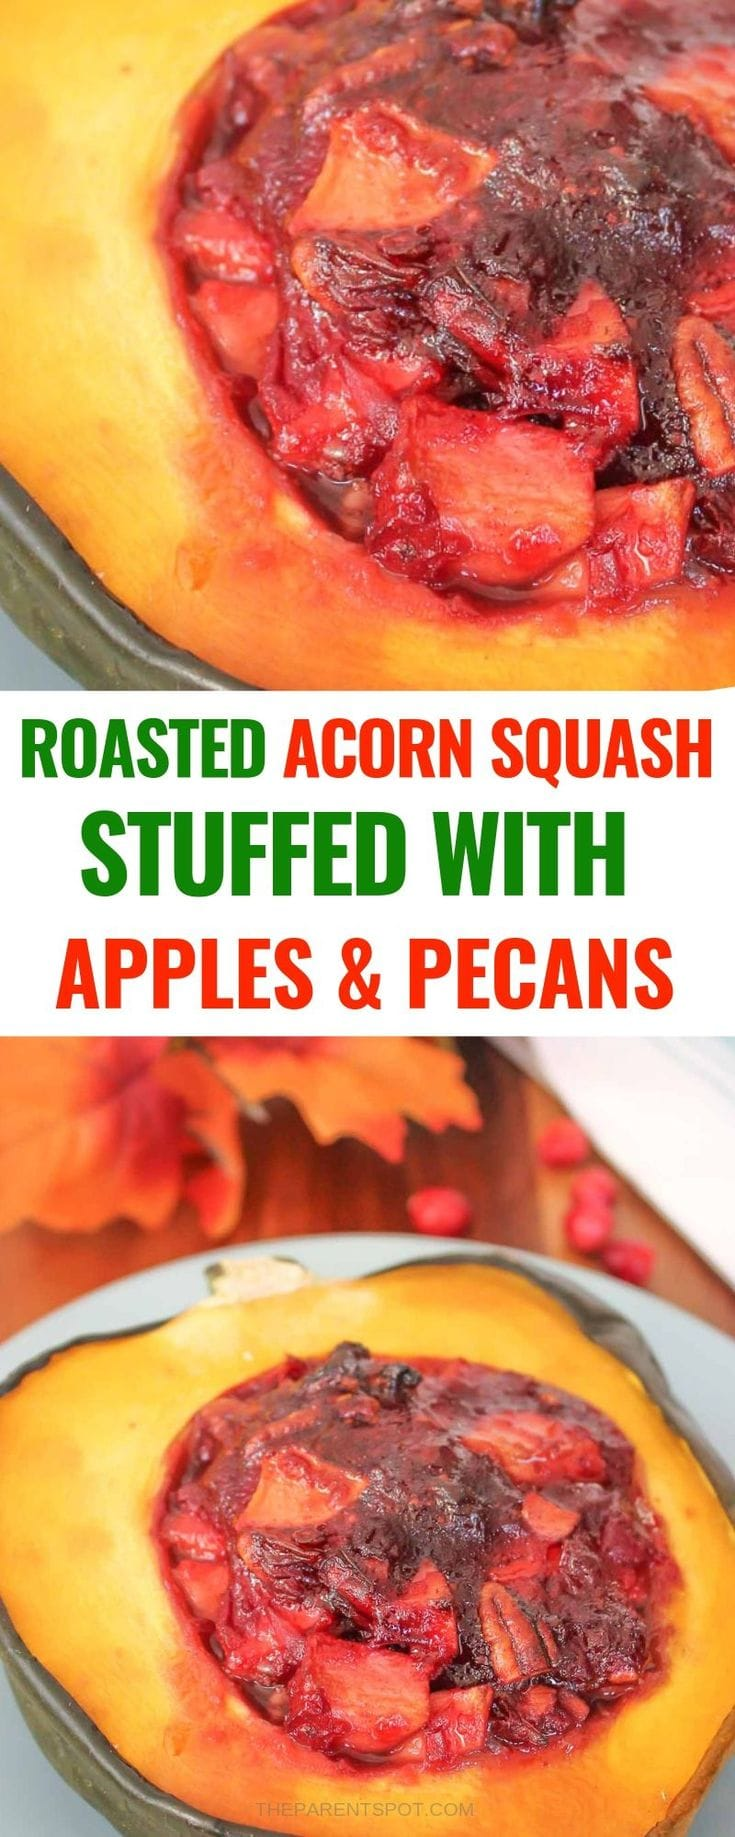 acorn squash side dish oven roasted and stuffed with apples and pecans